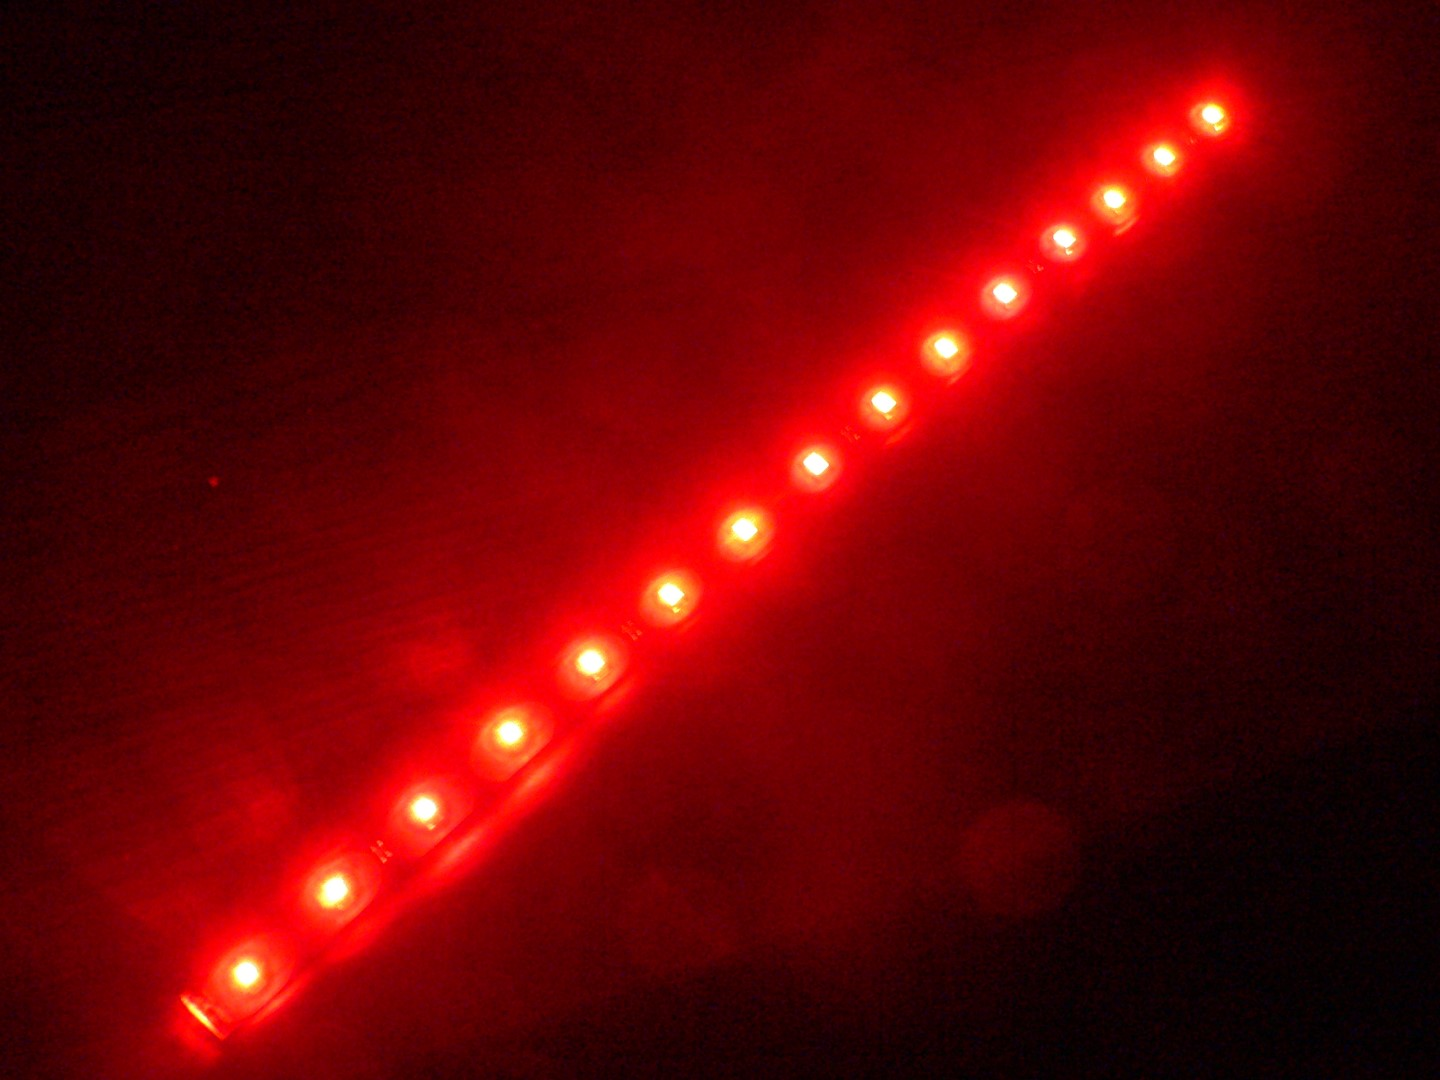 Red 15 LED Strip Adhesive Backed 1 Foot (30cm) Long